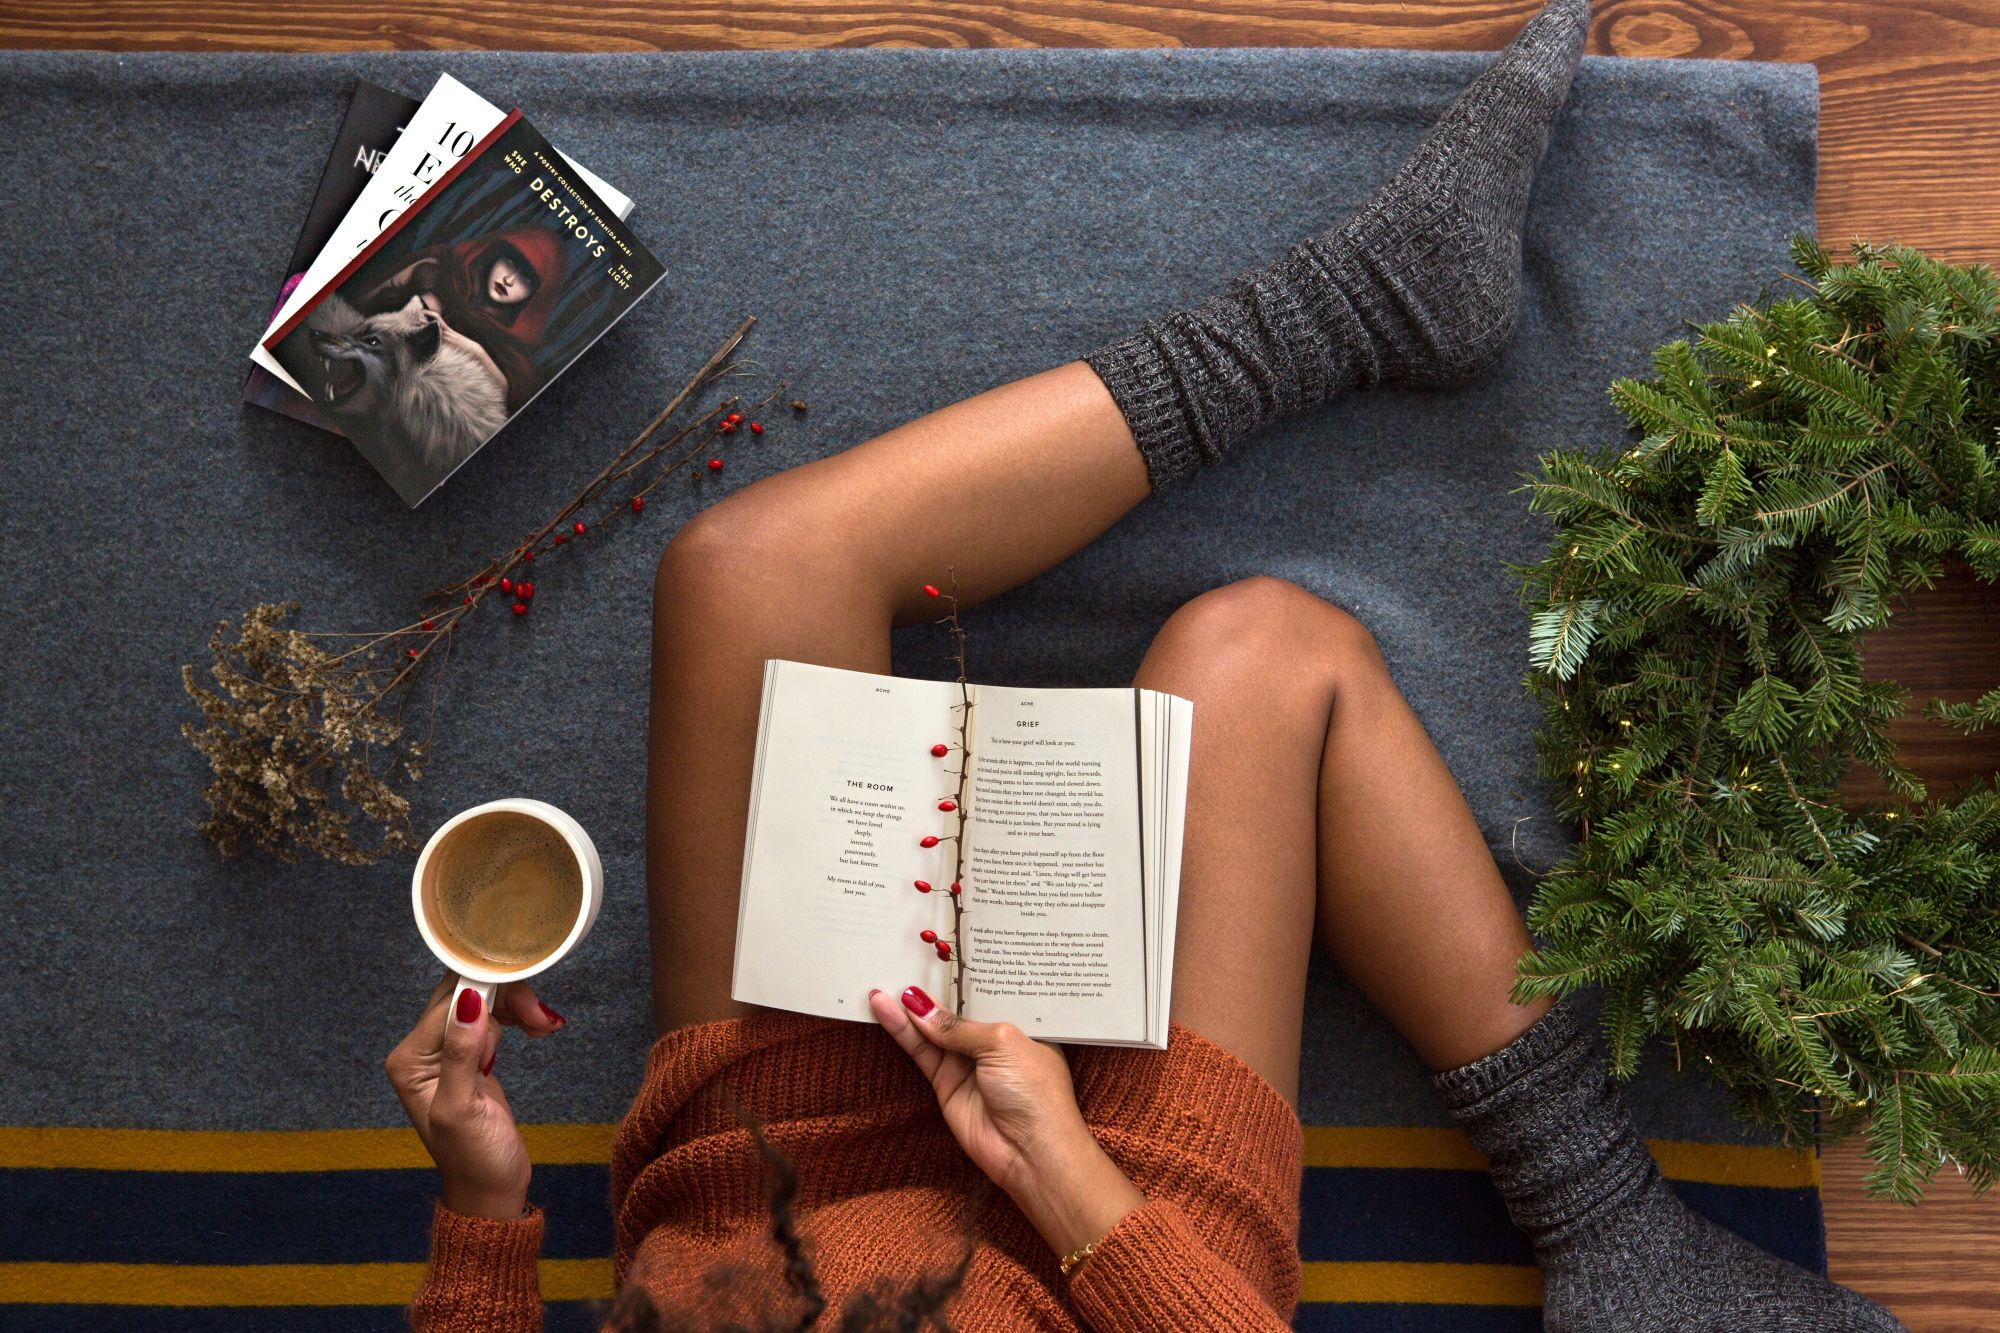 The Top 10 Books For Success To Read This Holiday Season